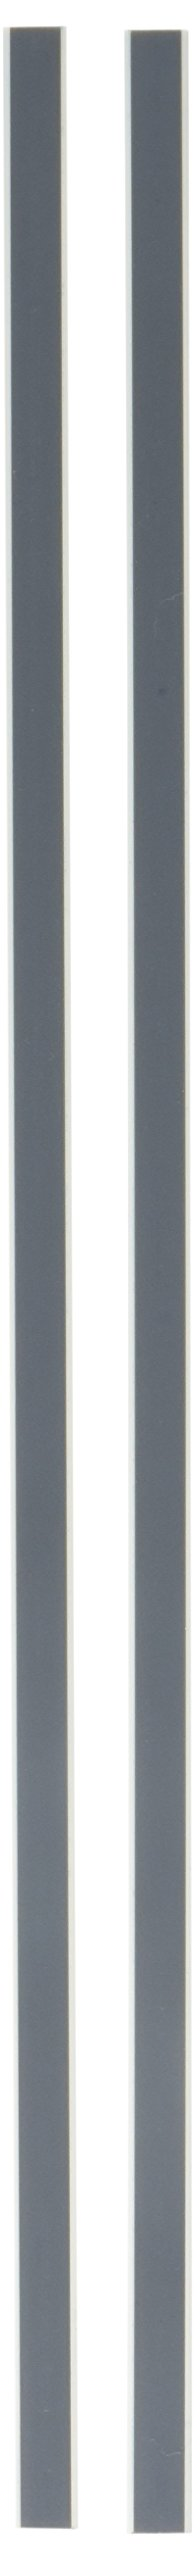 CARL RM-12/2 12-Inch Cutting Mat for all 12-Inch Trimmers